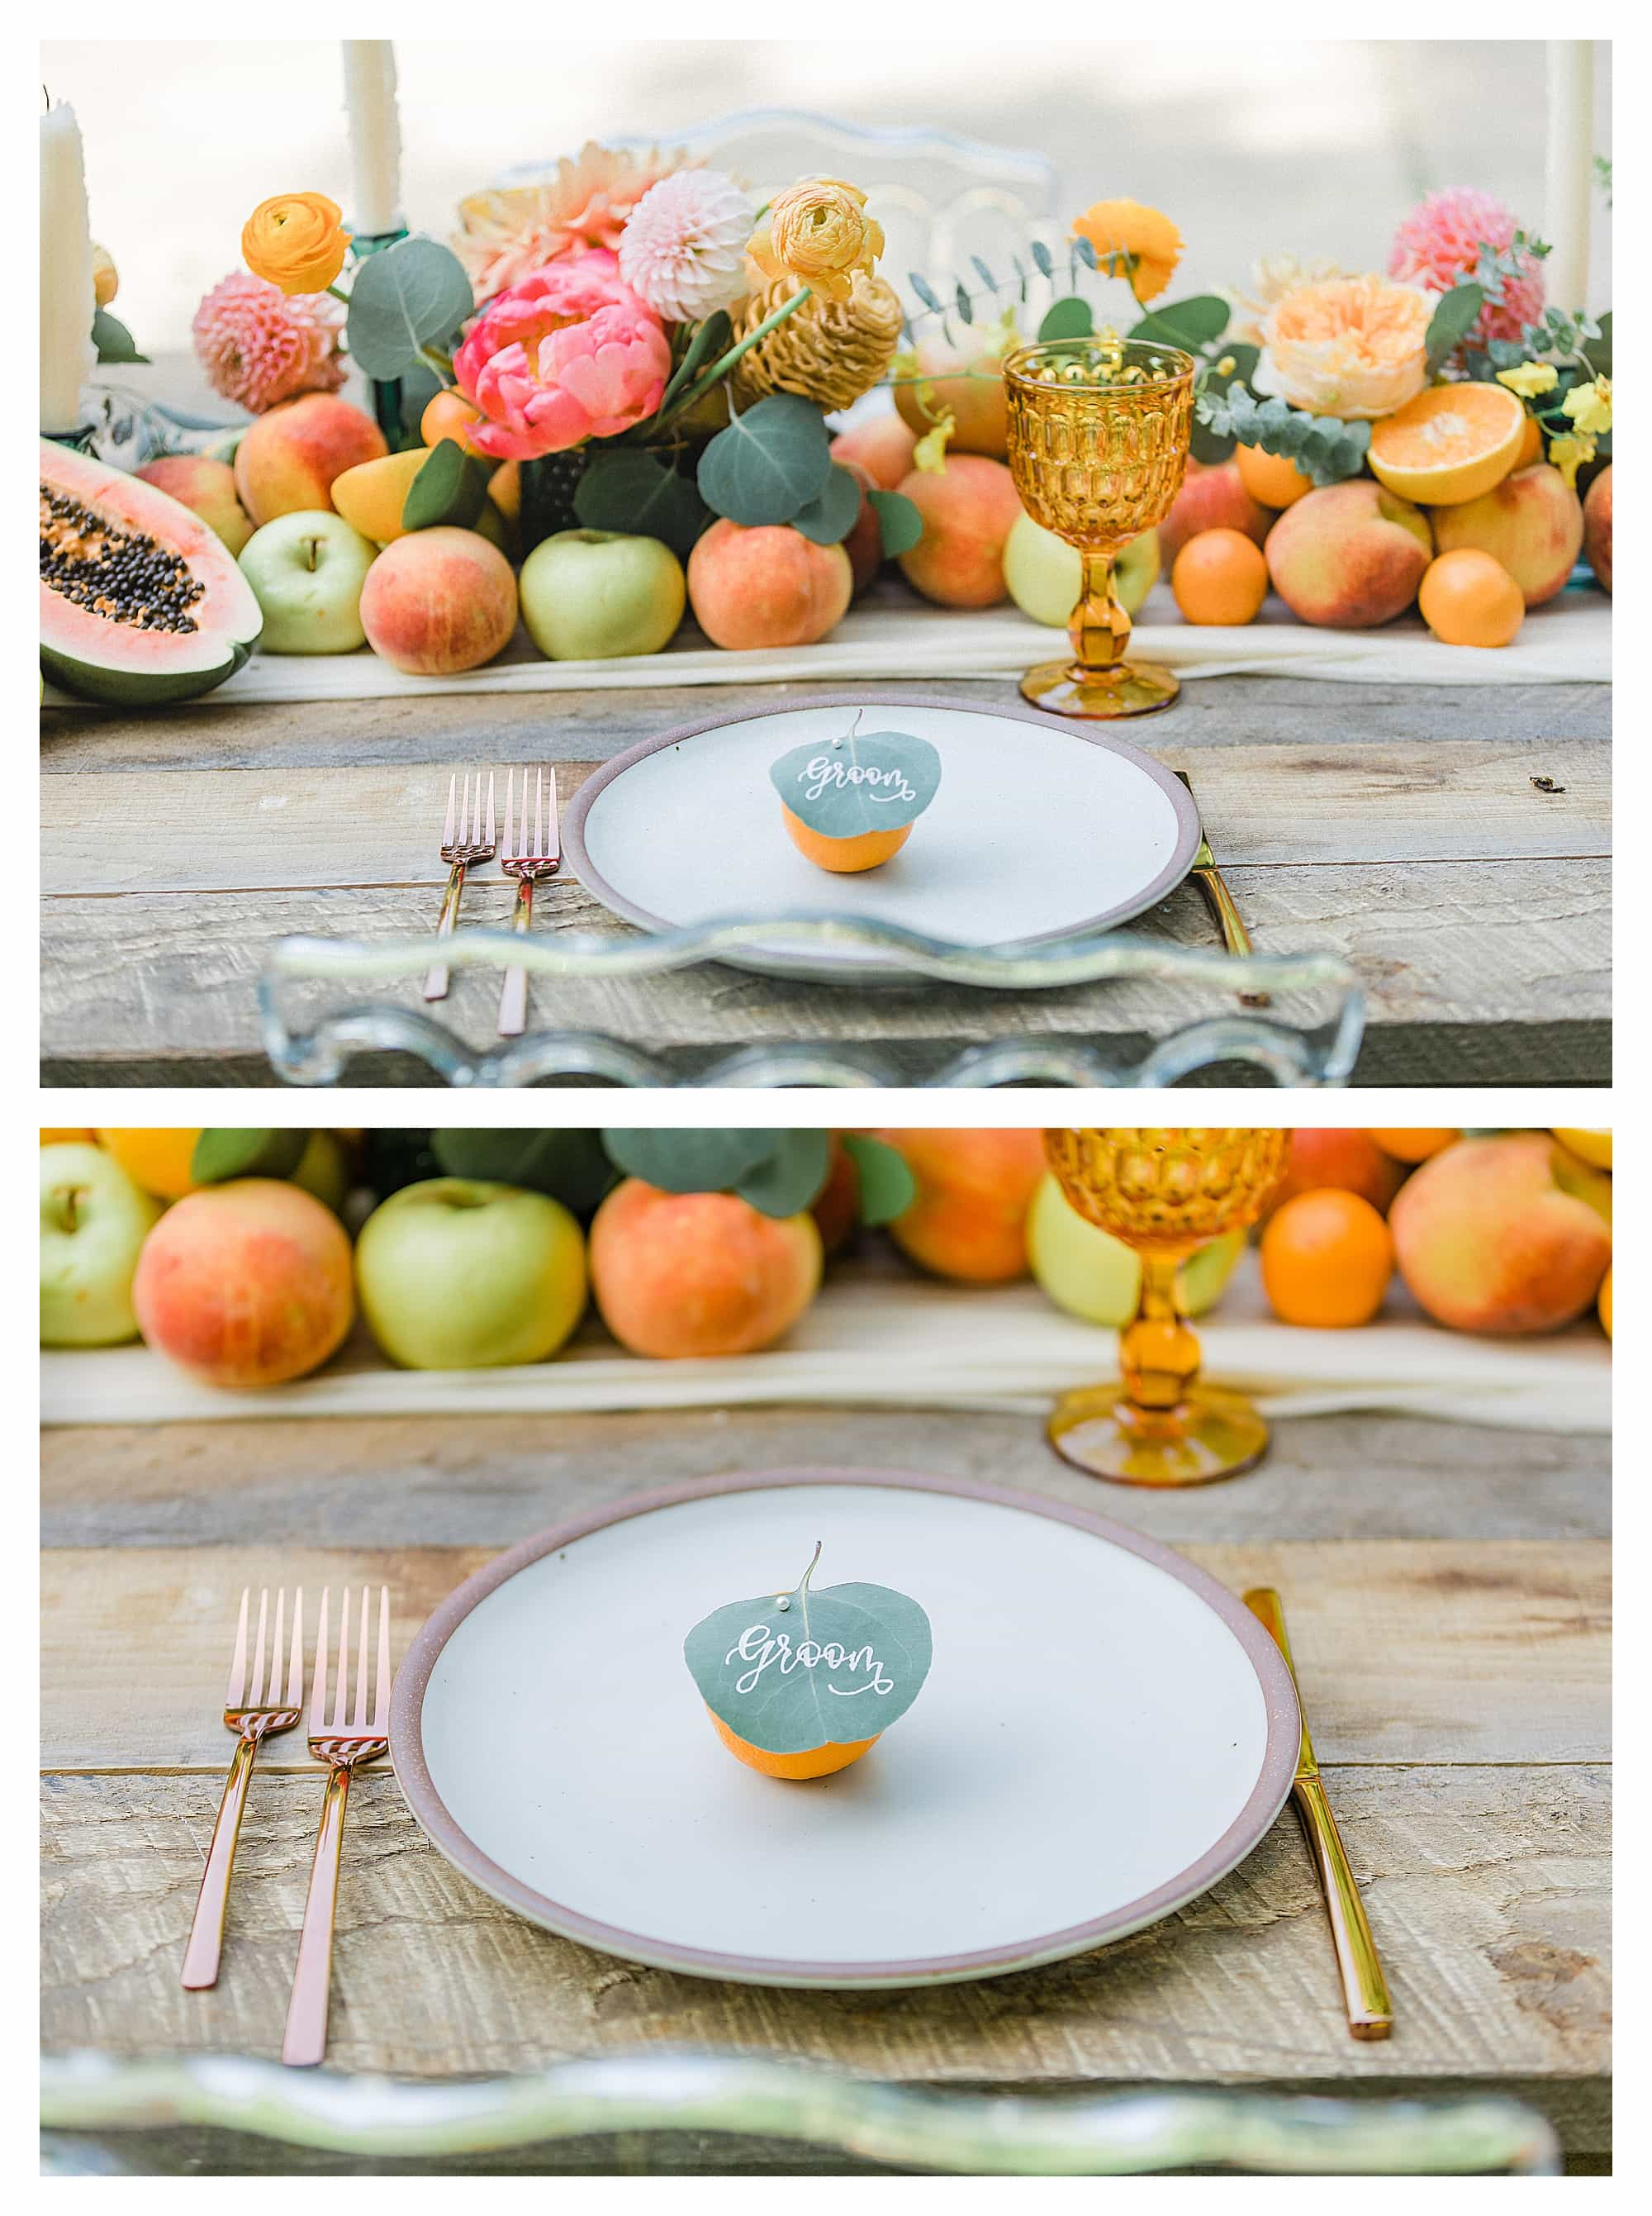 small orange with leaf pinned in it for place cards sitting on white place